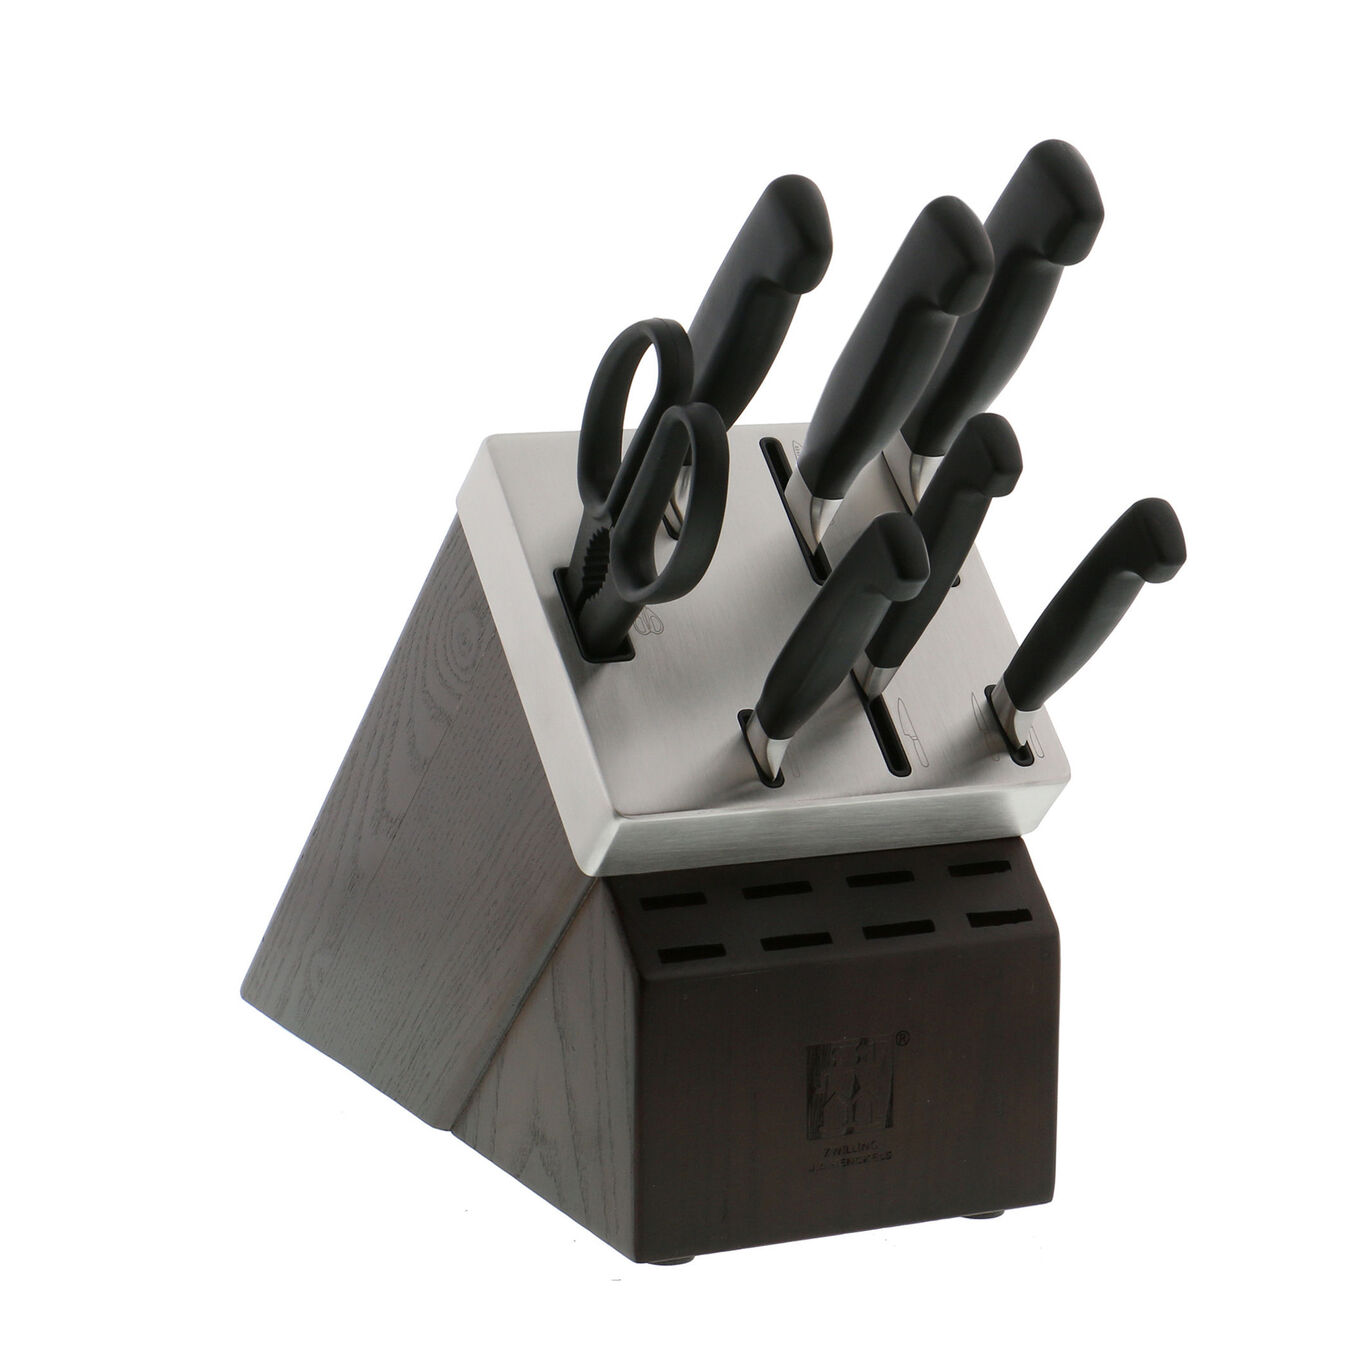 8-pc, Self-Sharpening Knife Block Set , natural,,large 3